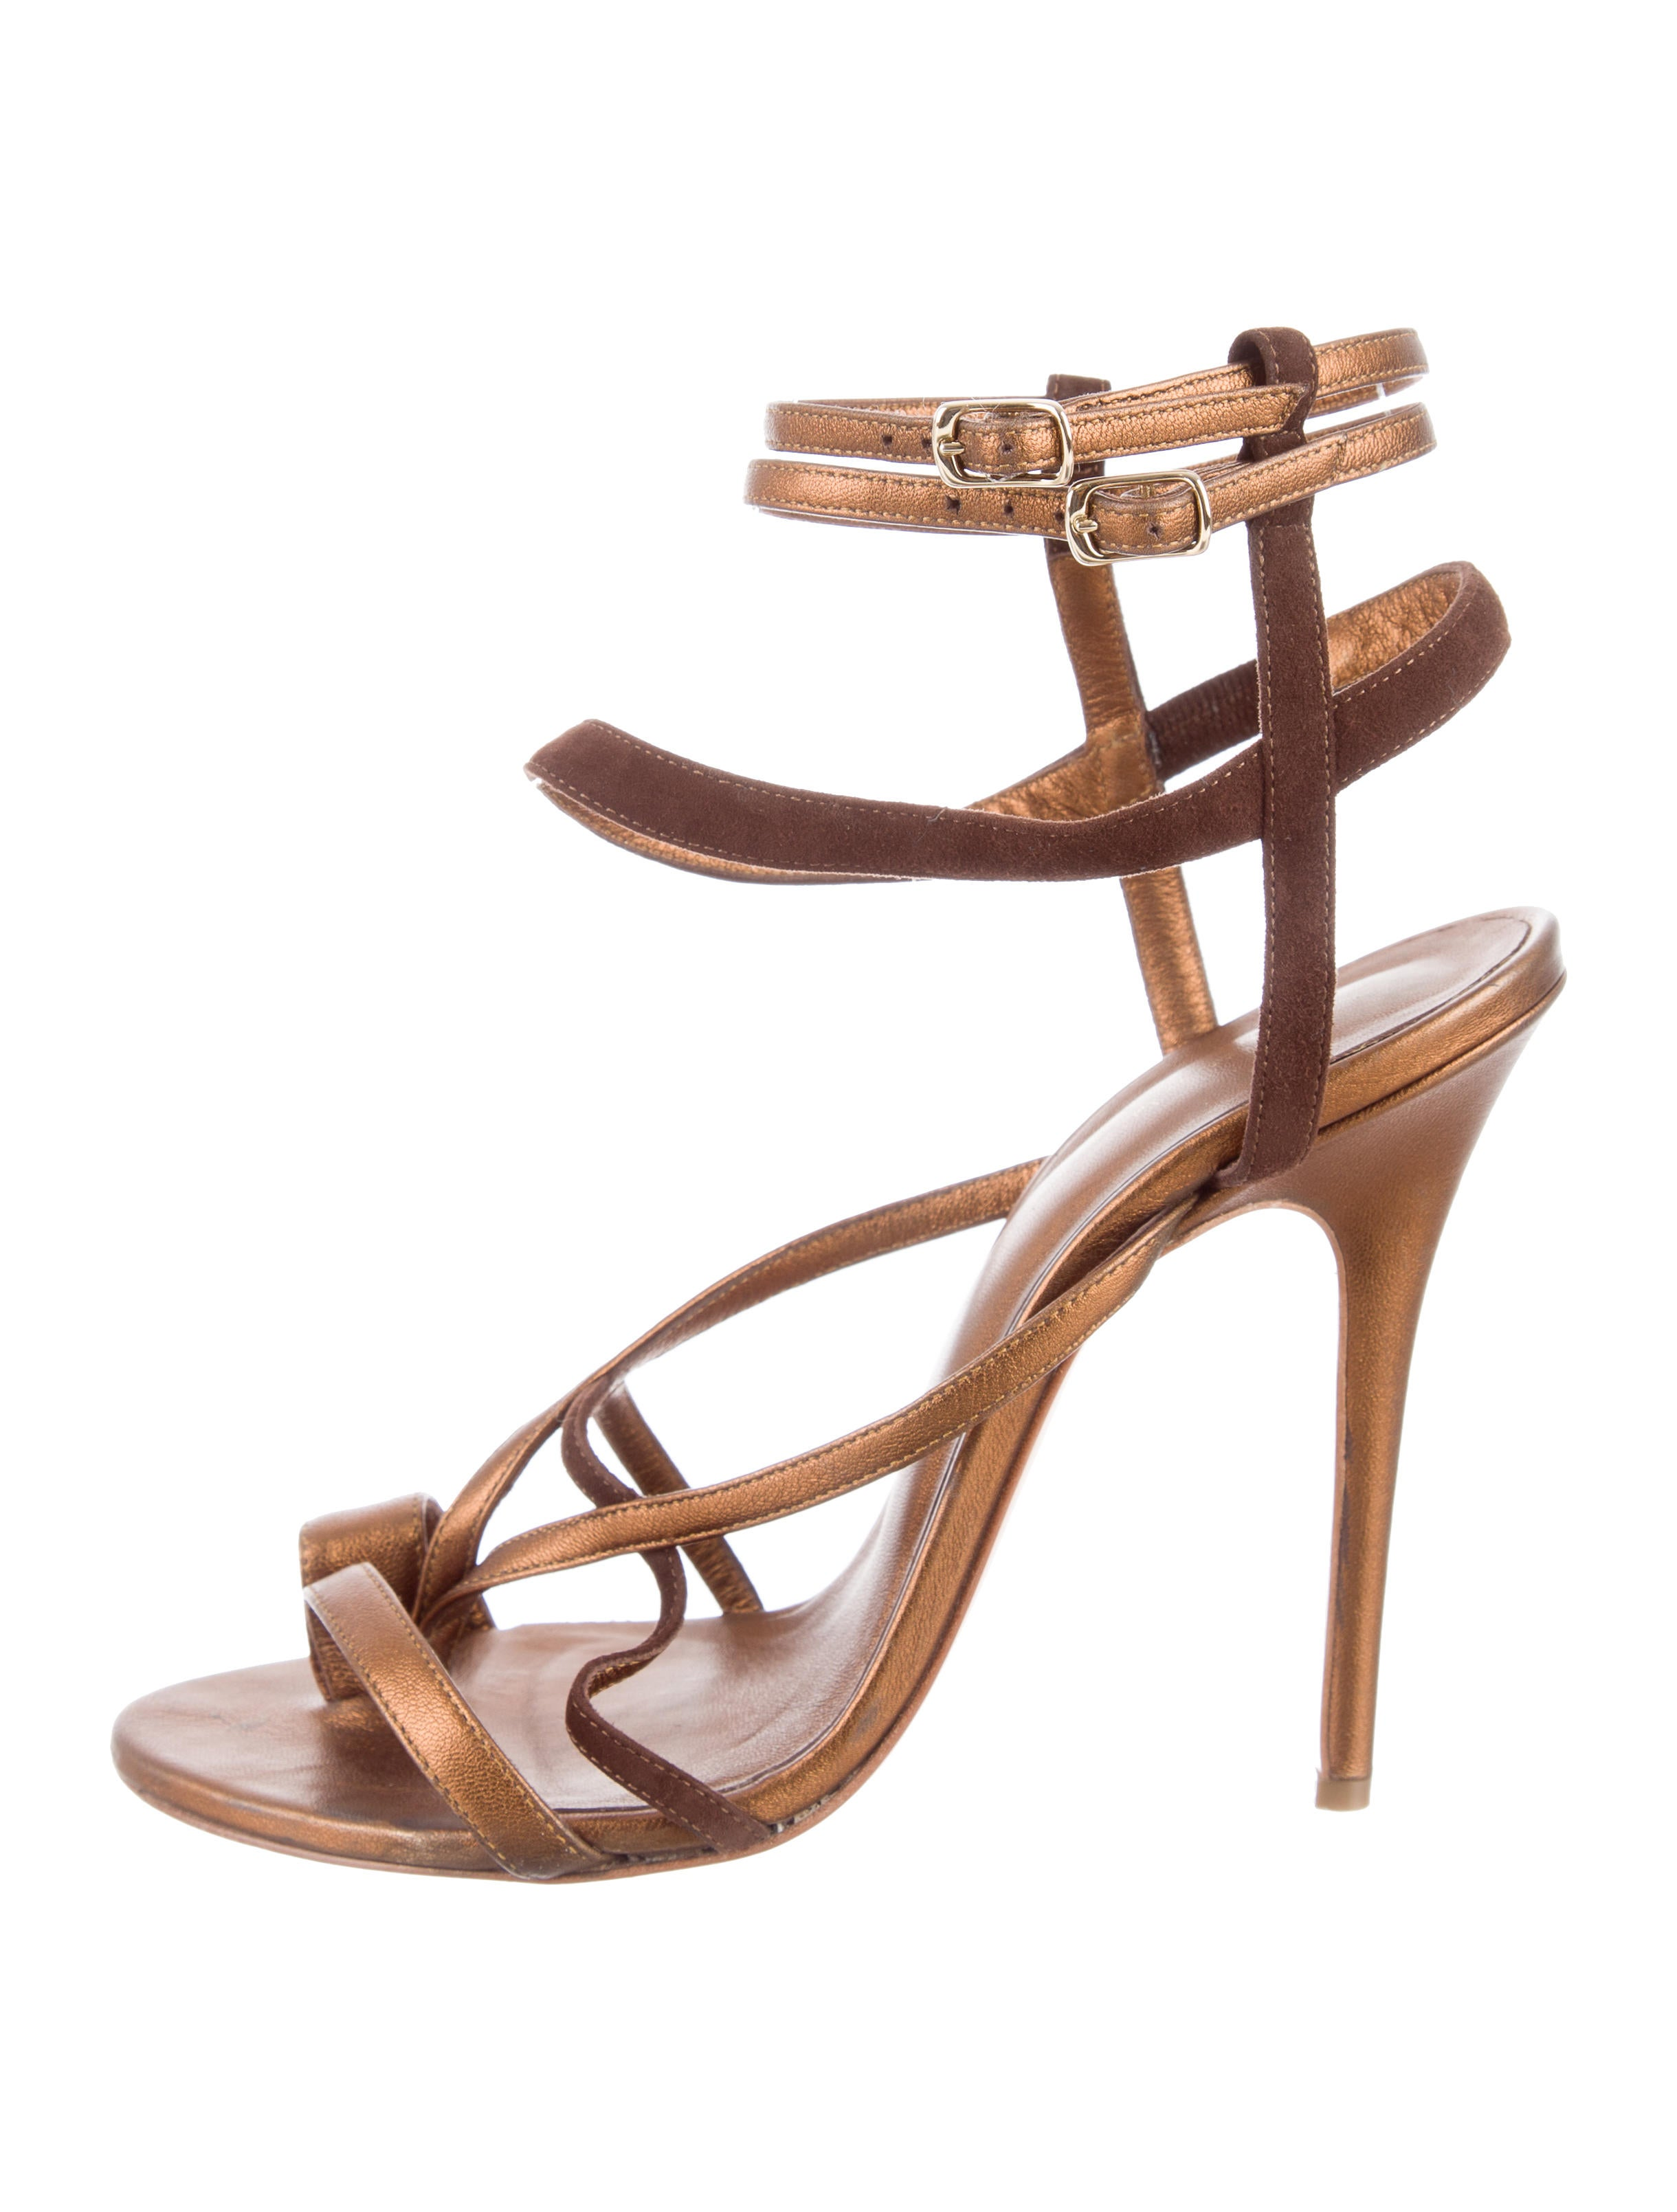 Jean-Michel Cazabat for Sophie Theallet Suede Multistrap Sandals with mastercard sale online djpACJ